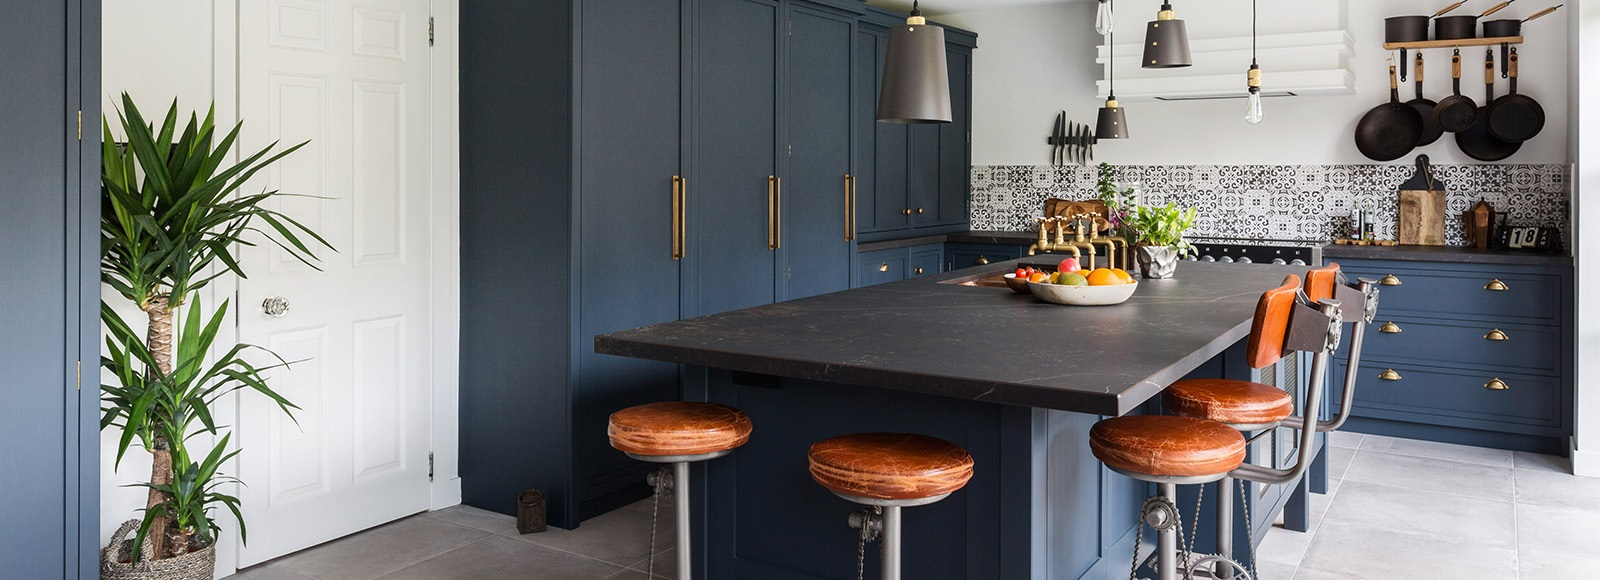 Industrial Navy Blue Shaker Kitchen - Burlanes handmade Decolane kitchen with larder, island and breakfast bar and amazing copper sink.